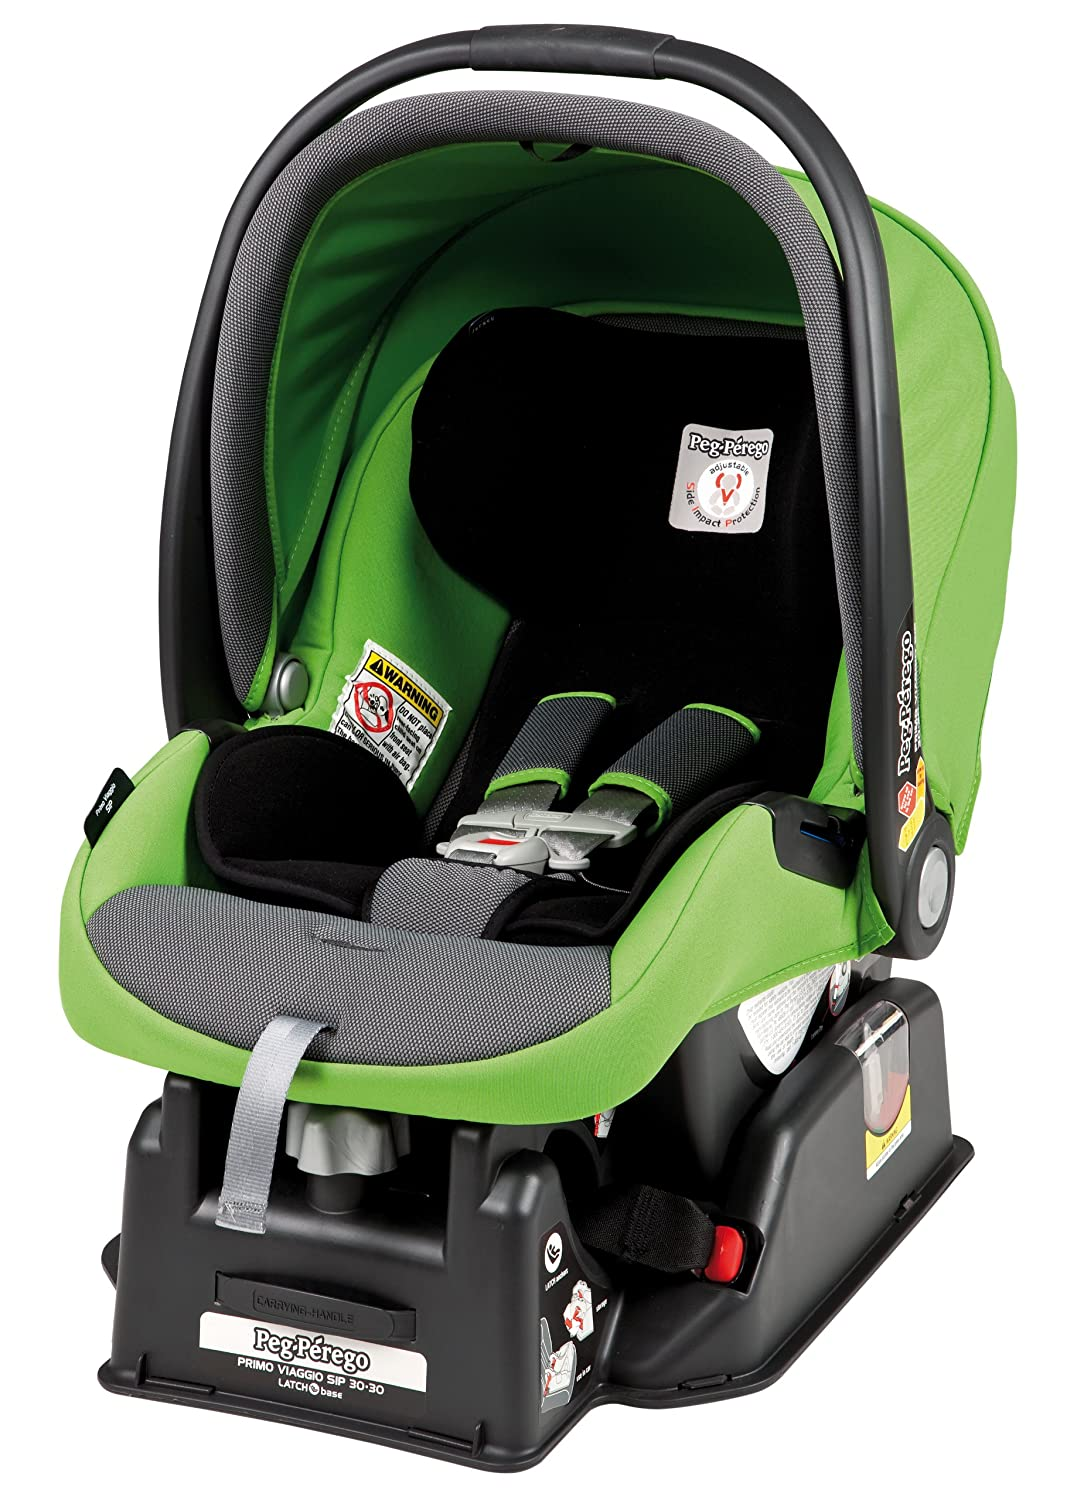 Peg Perego Primo Viaggio SIP 30/30 Car Seat, Mentha (Discontinued by Manufacturer)